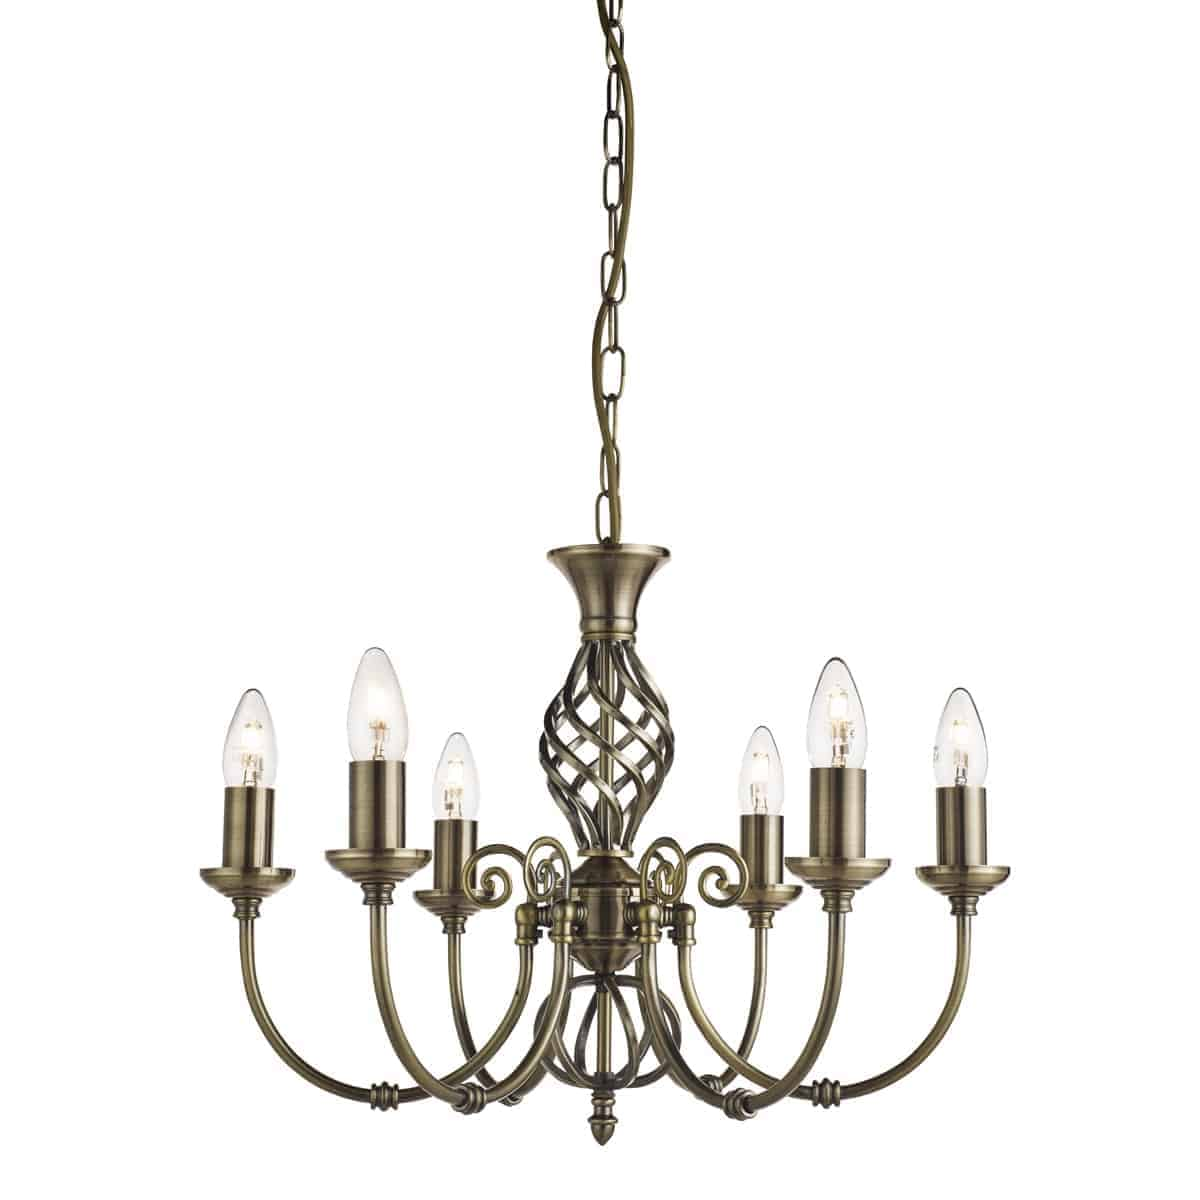 Searchlight 8396-6 Zanzibar Antique Brass 6 Light Fitting with Ornate Twisted Column